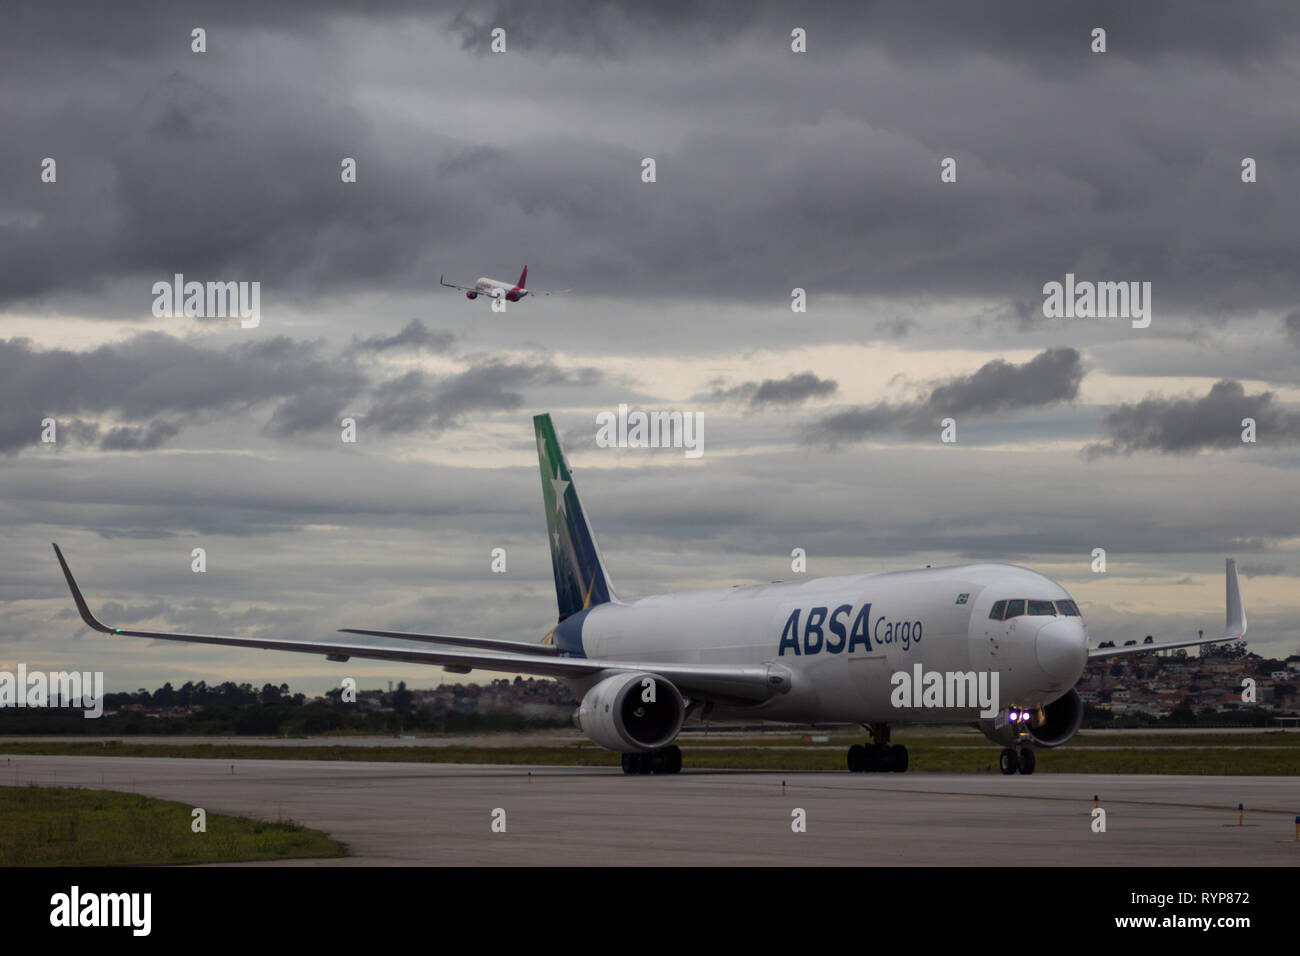 Boeing 767-300F from ABSA Cargo Airlines taxiing in Guarulhos Airport while another plane takes off. - Stock Image